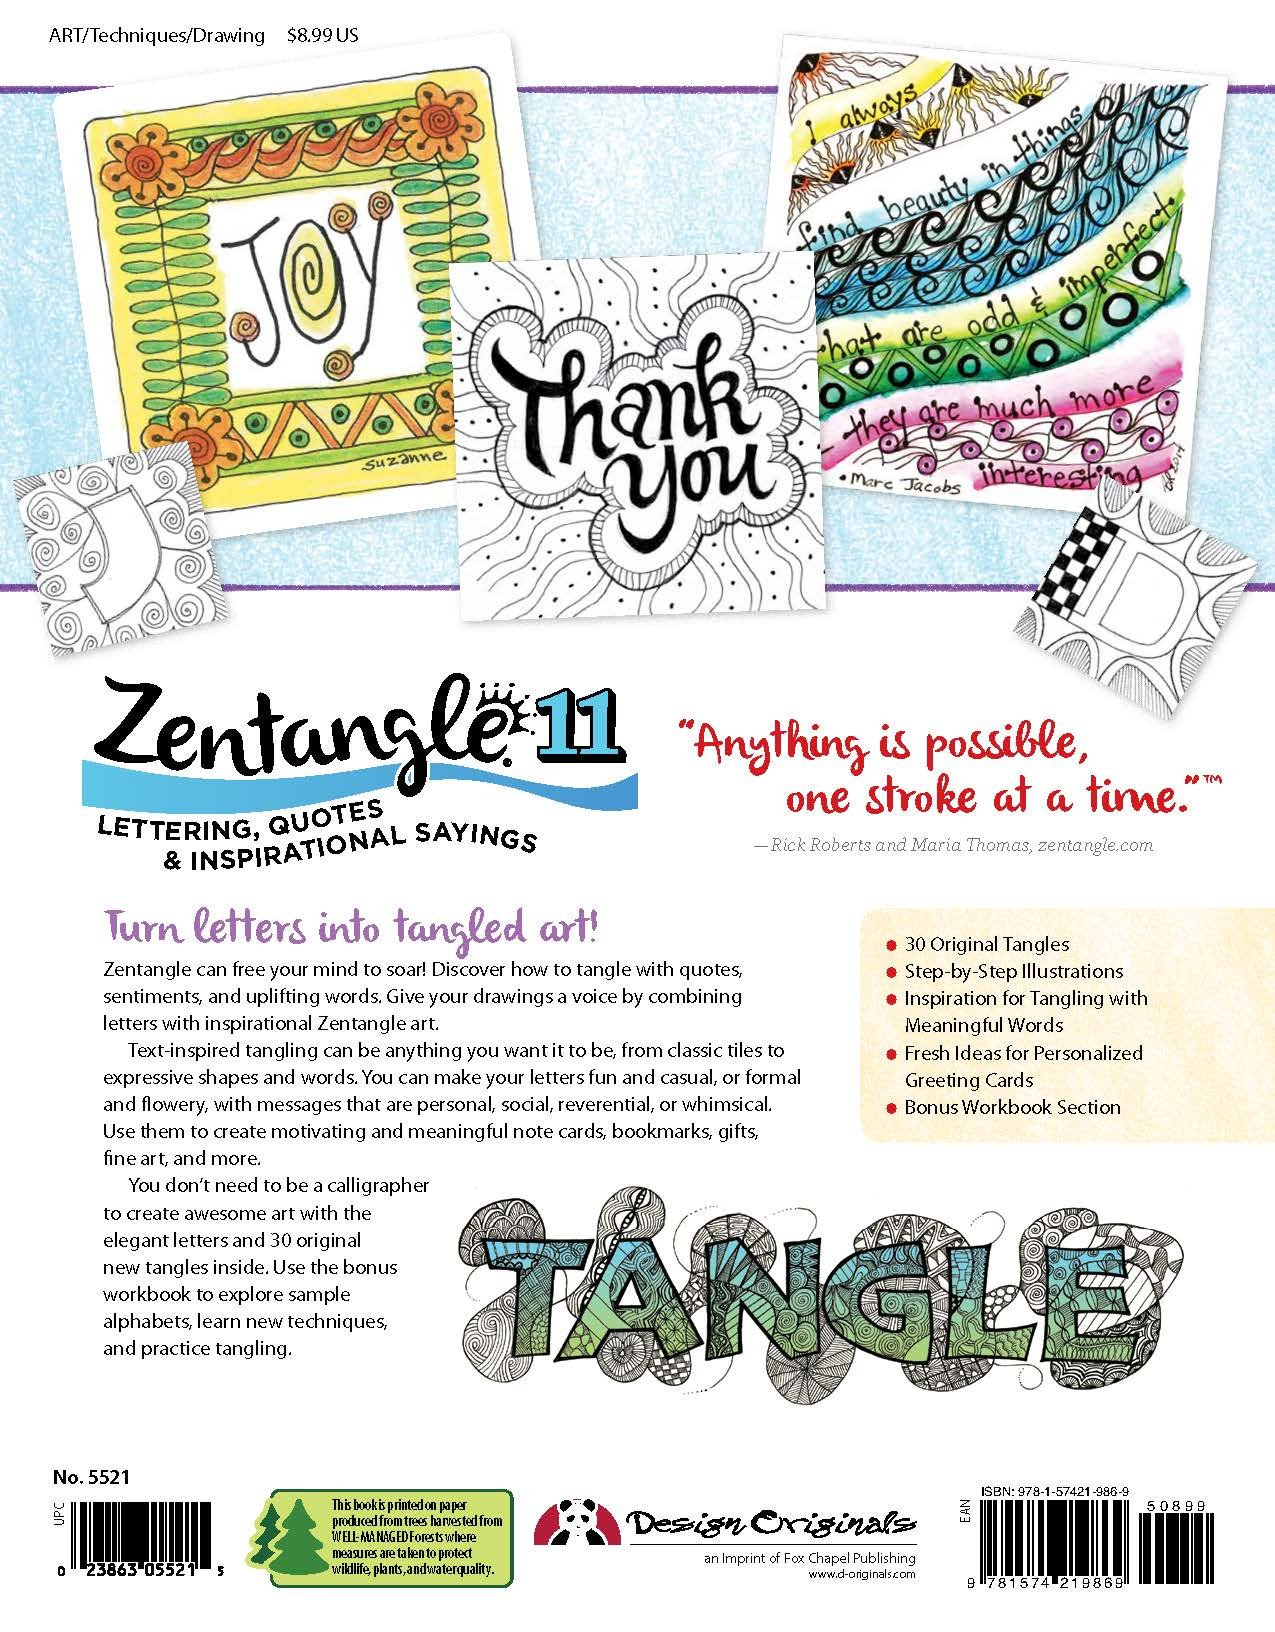 Zentangle 11, Workbook Edition: Lettering, Quotes & Inspirational Sayings:  Suzanne McNeill: 9781574219869: Amazon.com: Books